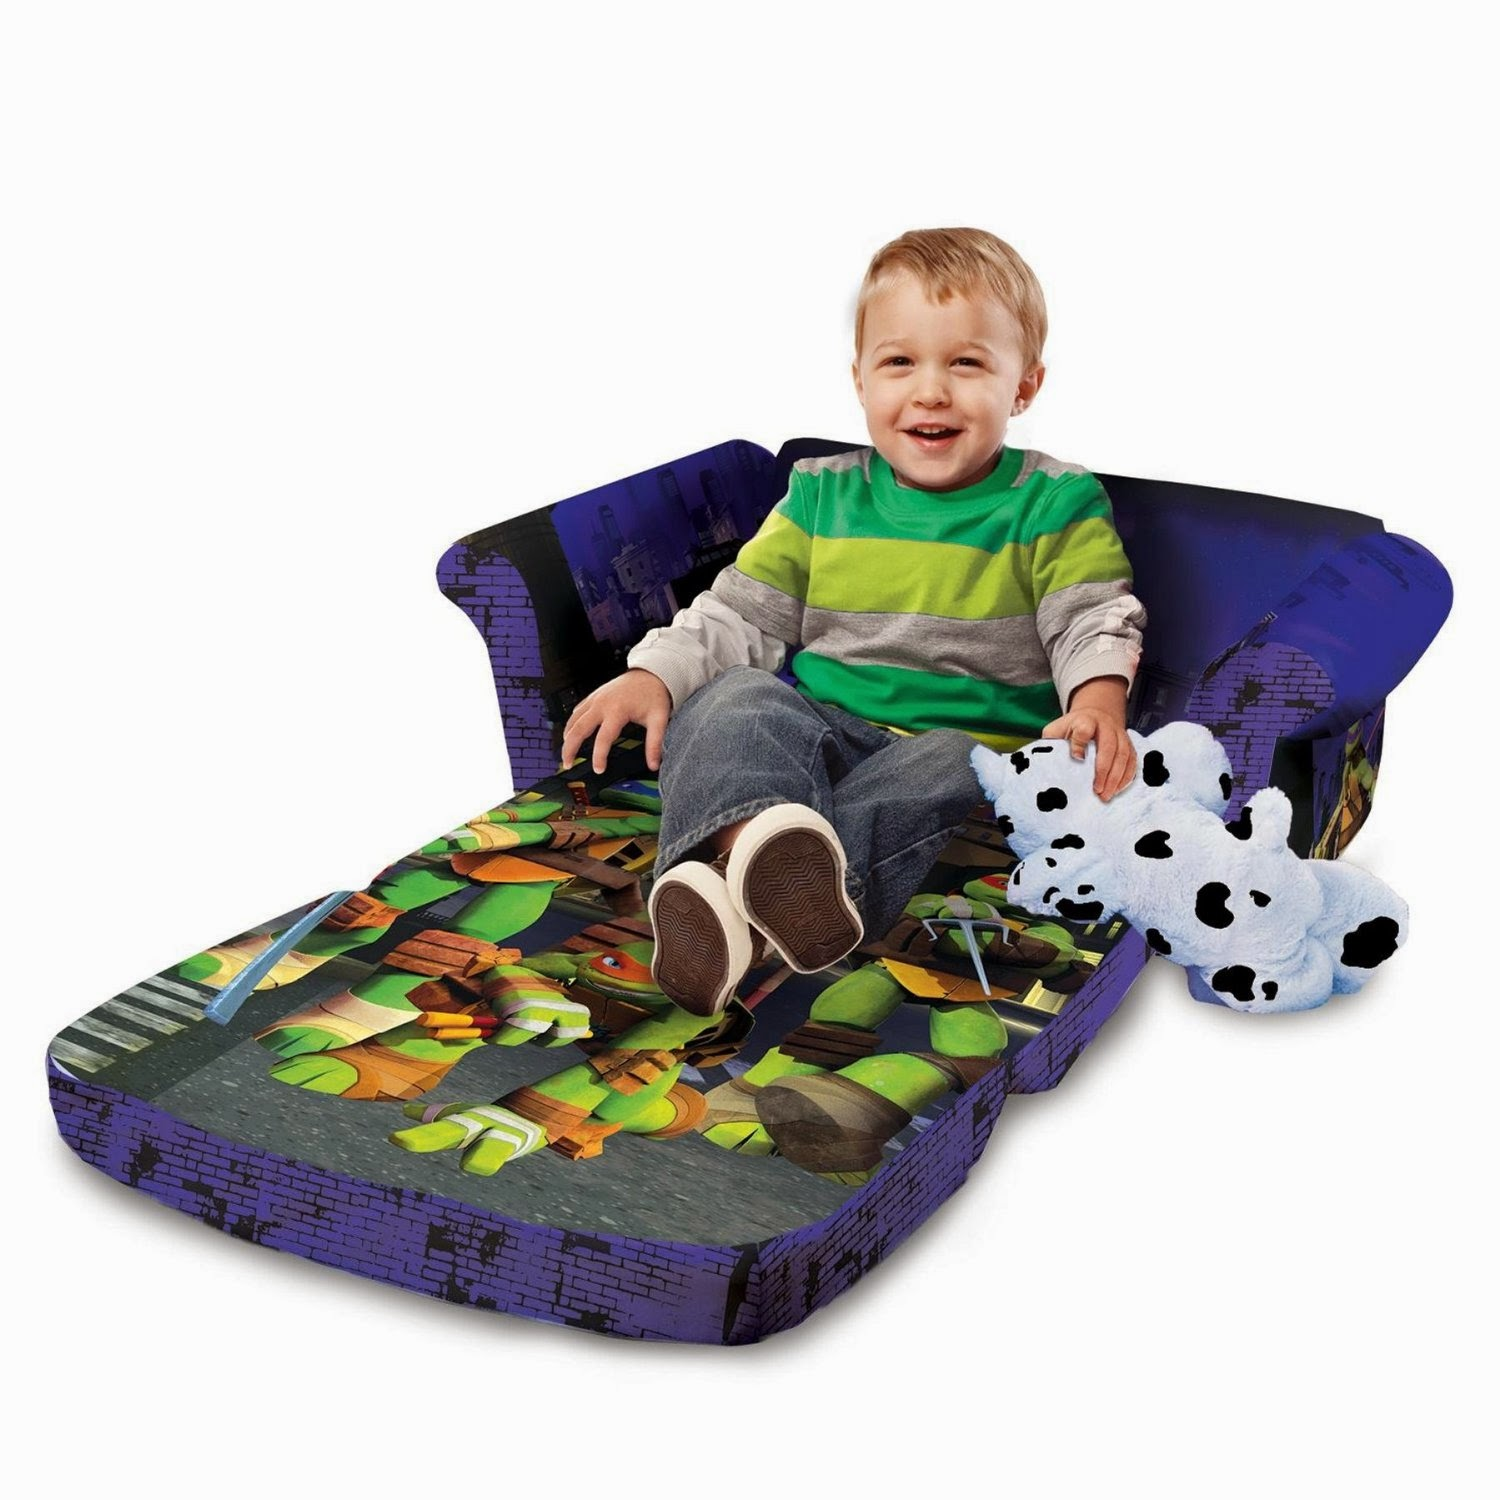 Fold out couch for kids - Open Sofa Marshmallow Kids Fold Out Couch With Neverland Pirates